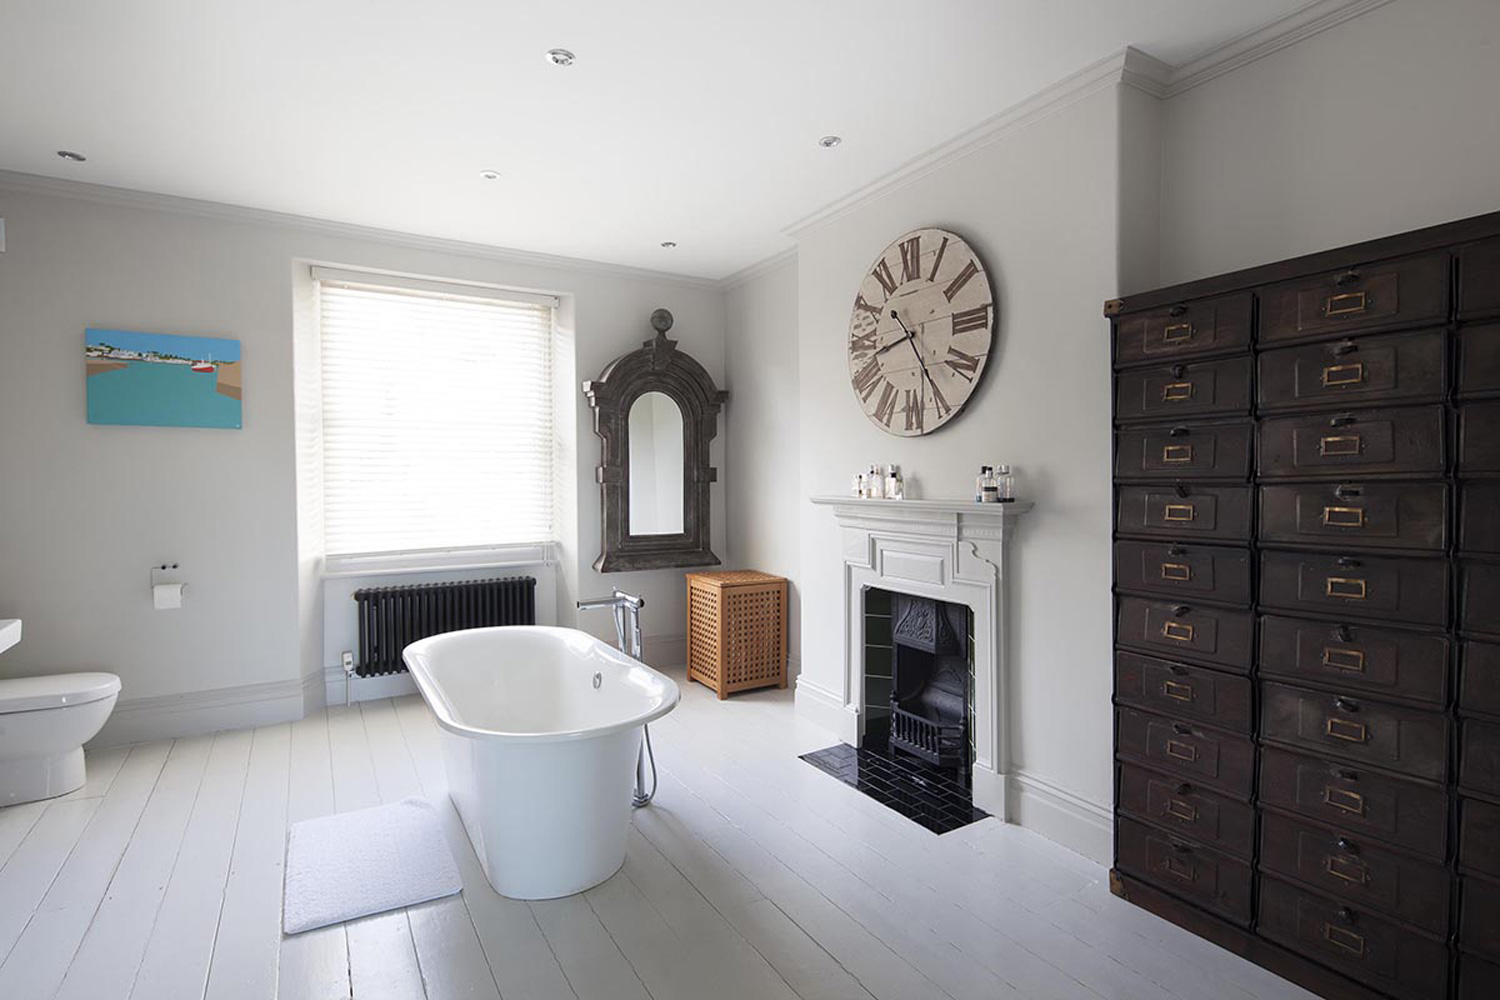 Architecture Photographer in Cornwall: Bathroom in Cornwall with fantastic interior design and architecture